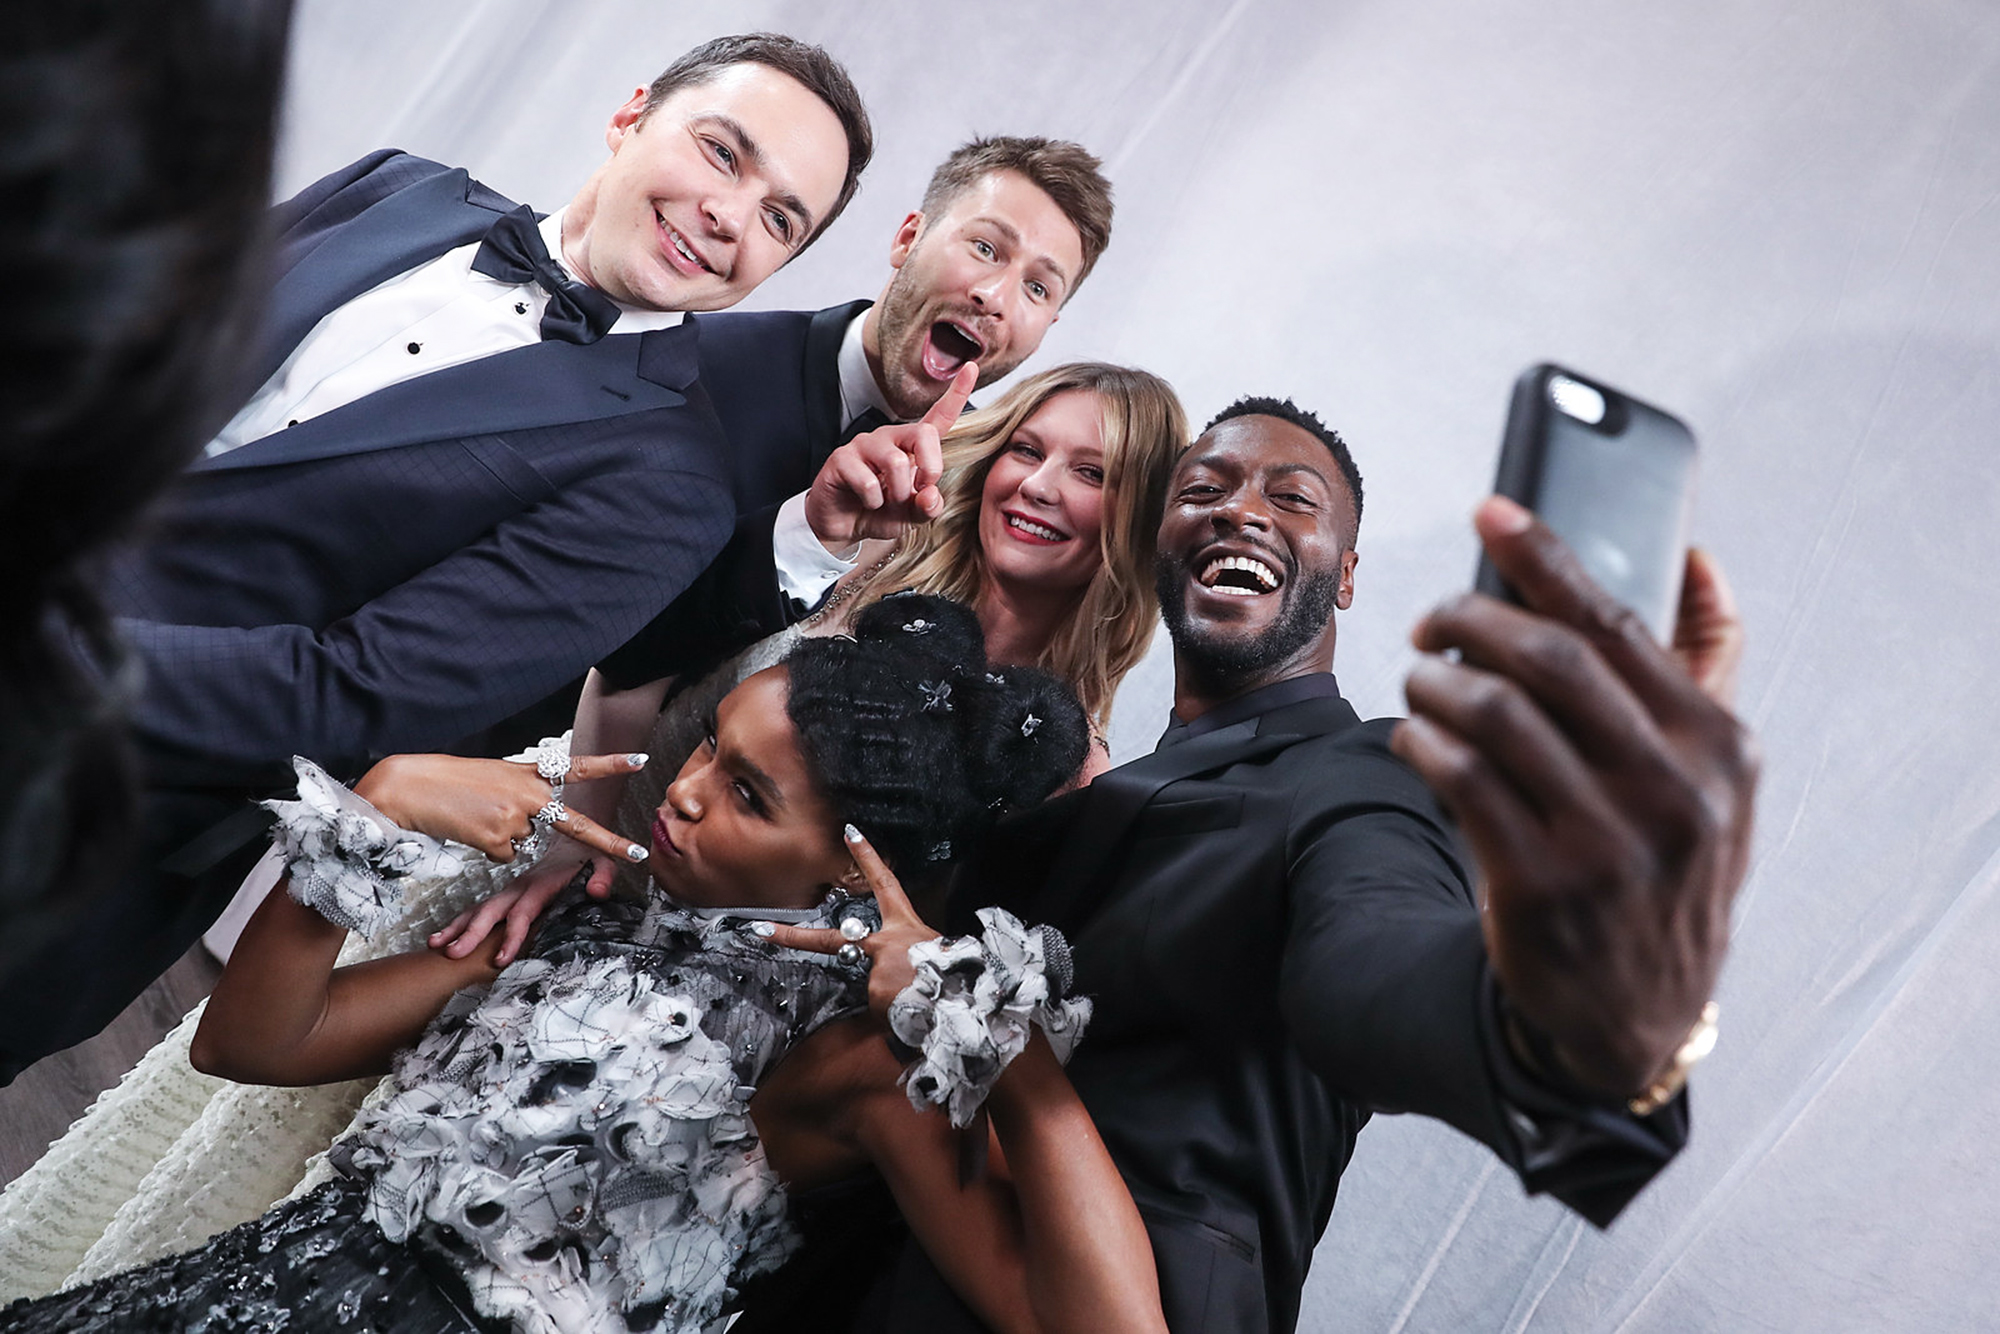 Jim Parsons, Glen Powell, Kirsten Dunst, Aldis Hodge, and Janelle Monáe at the 23rd Annual Screen Actors Guild Awards in Los Angeles, on Jan. 29, 2017.